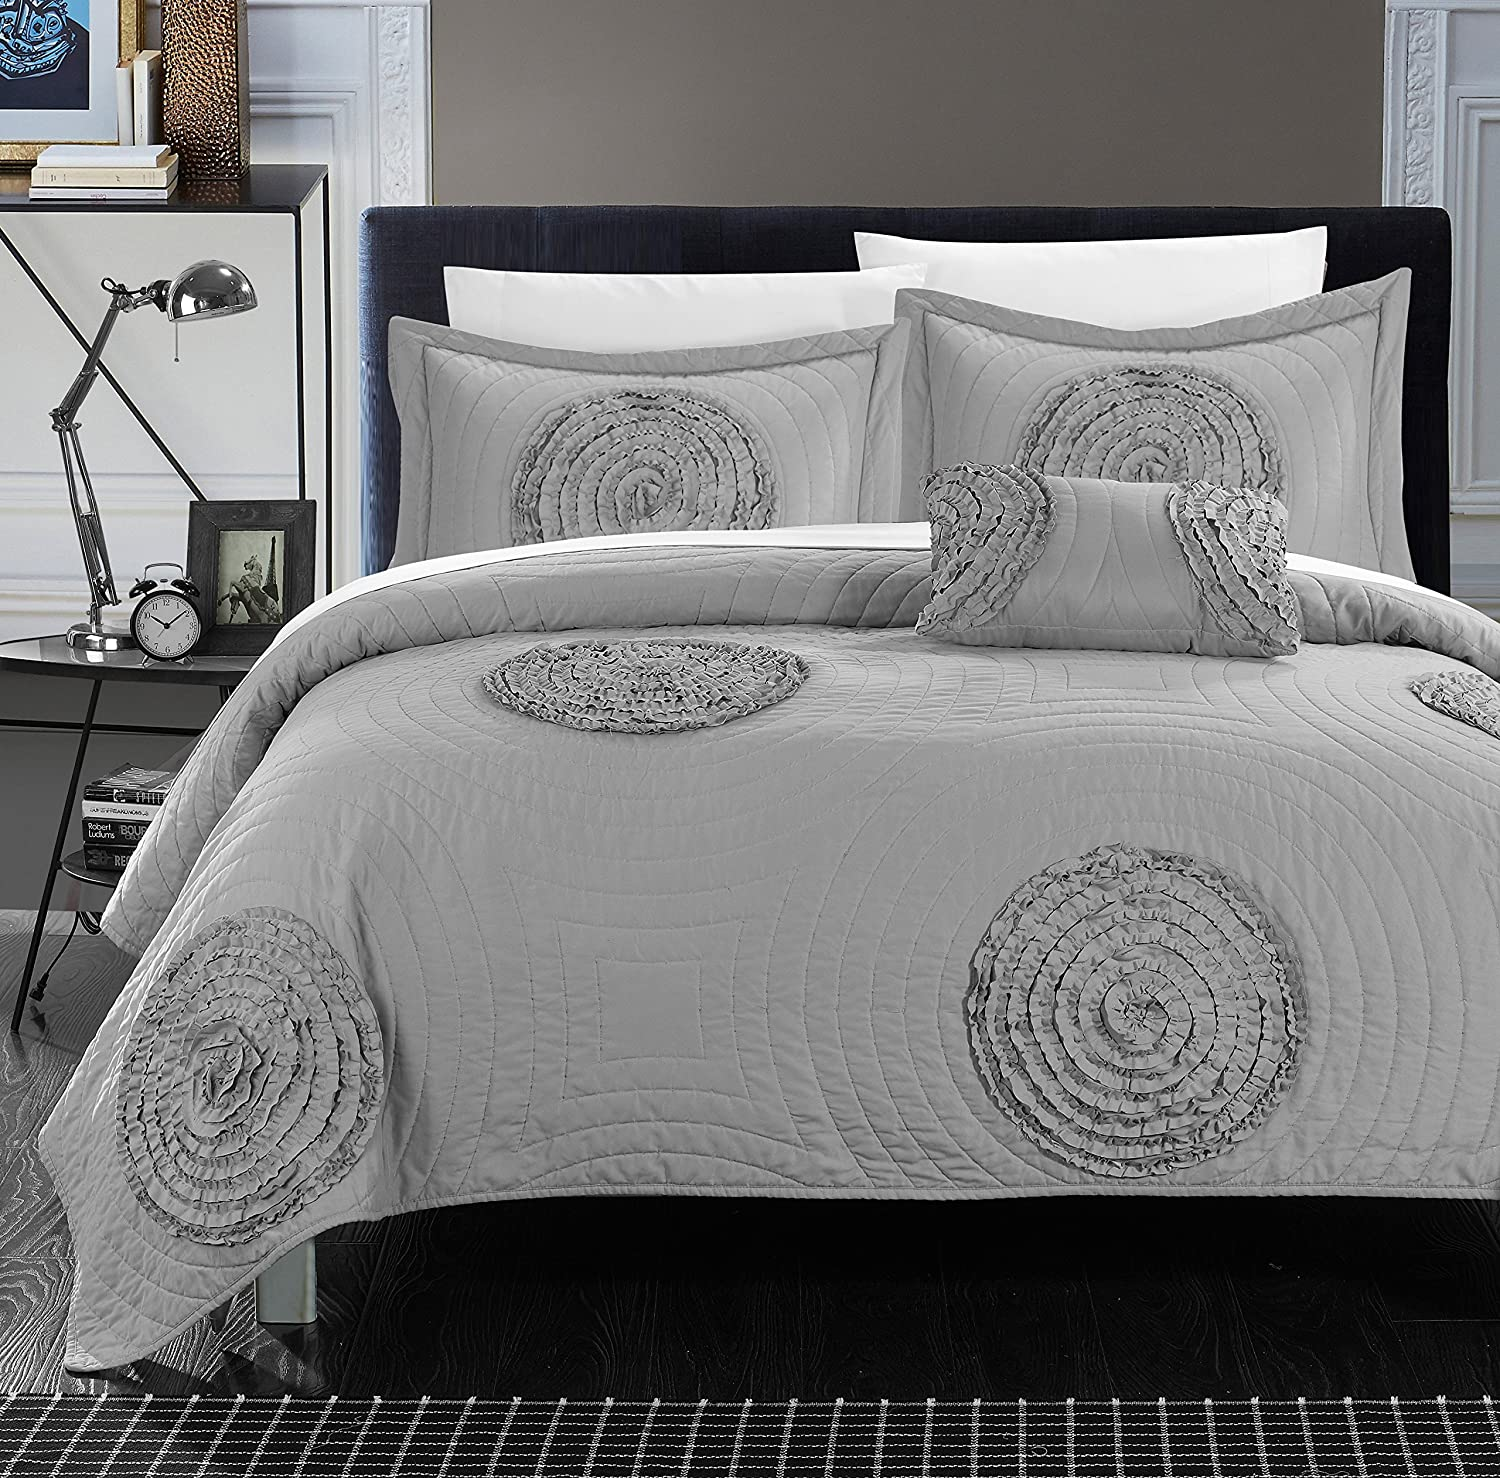 Chic Home 4 Piece Jupiter Quilted & Rouched Floral Abstract Applique Quilt Set, Queen, Silver